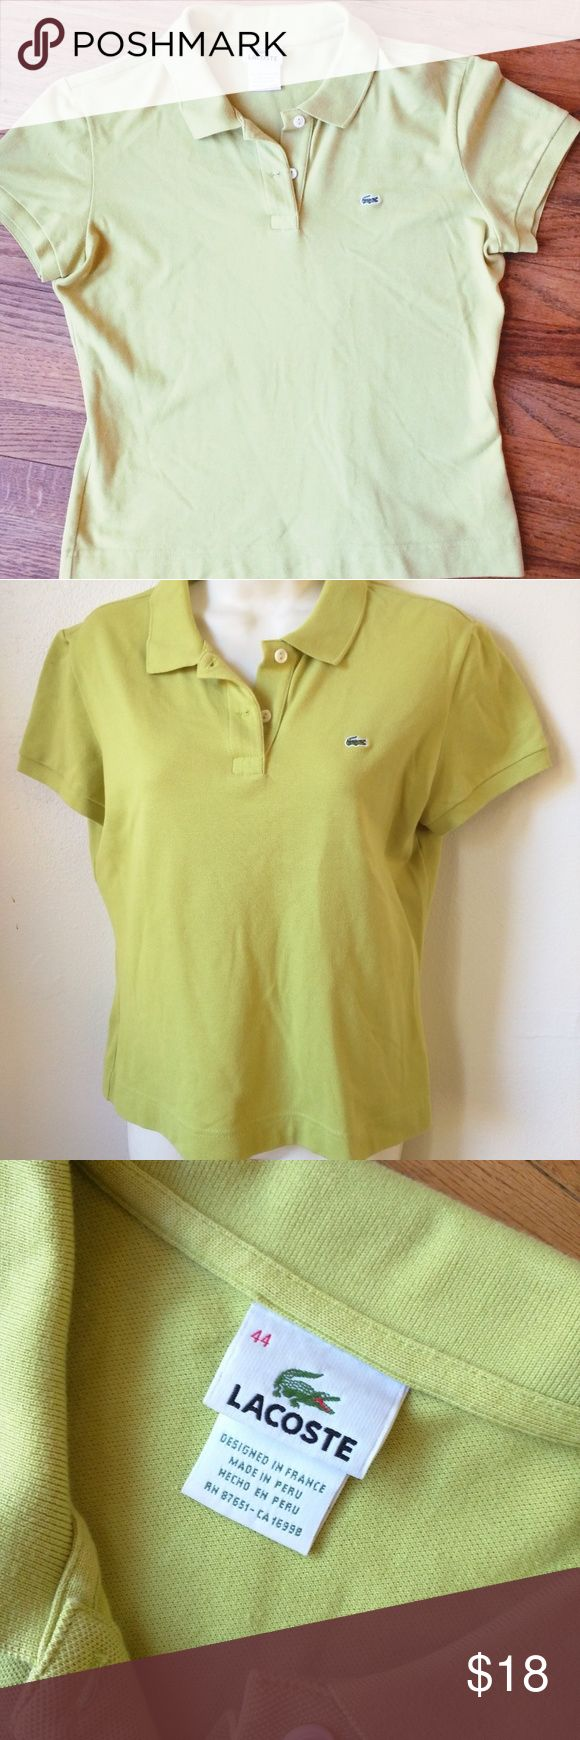 """Lacoste polo shirt women's 44 lime green bright Size 8 curvy fit, classic shirt, in good condition!  Chest 42"""" Back length 24""""  Peace!  I have two more, this size, different colors.  Bundle! Lacoste Tops Tees - Short Sleeve"""